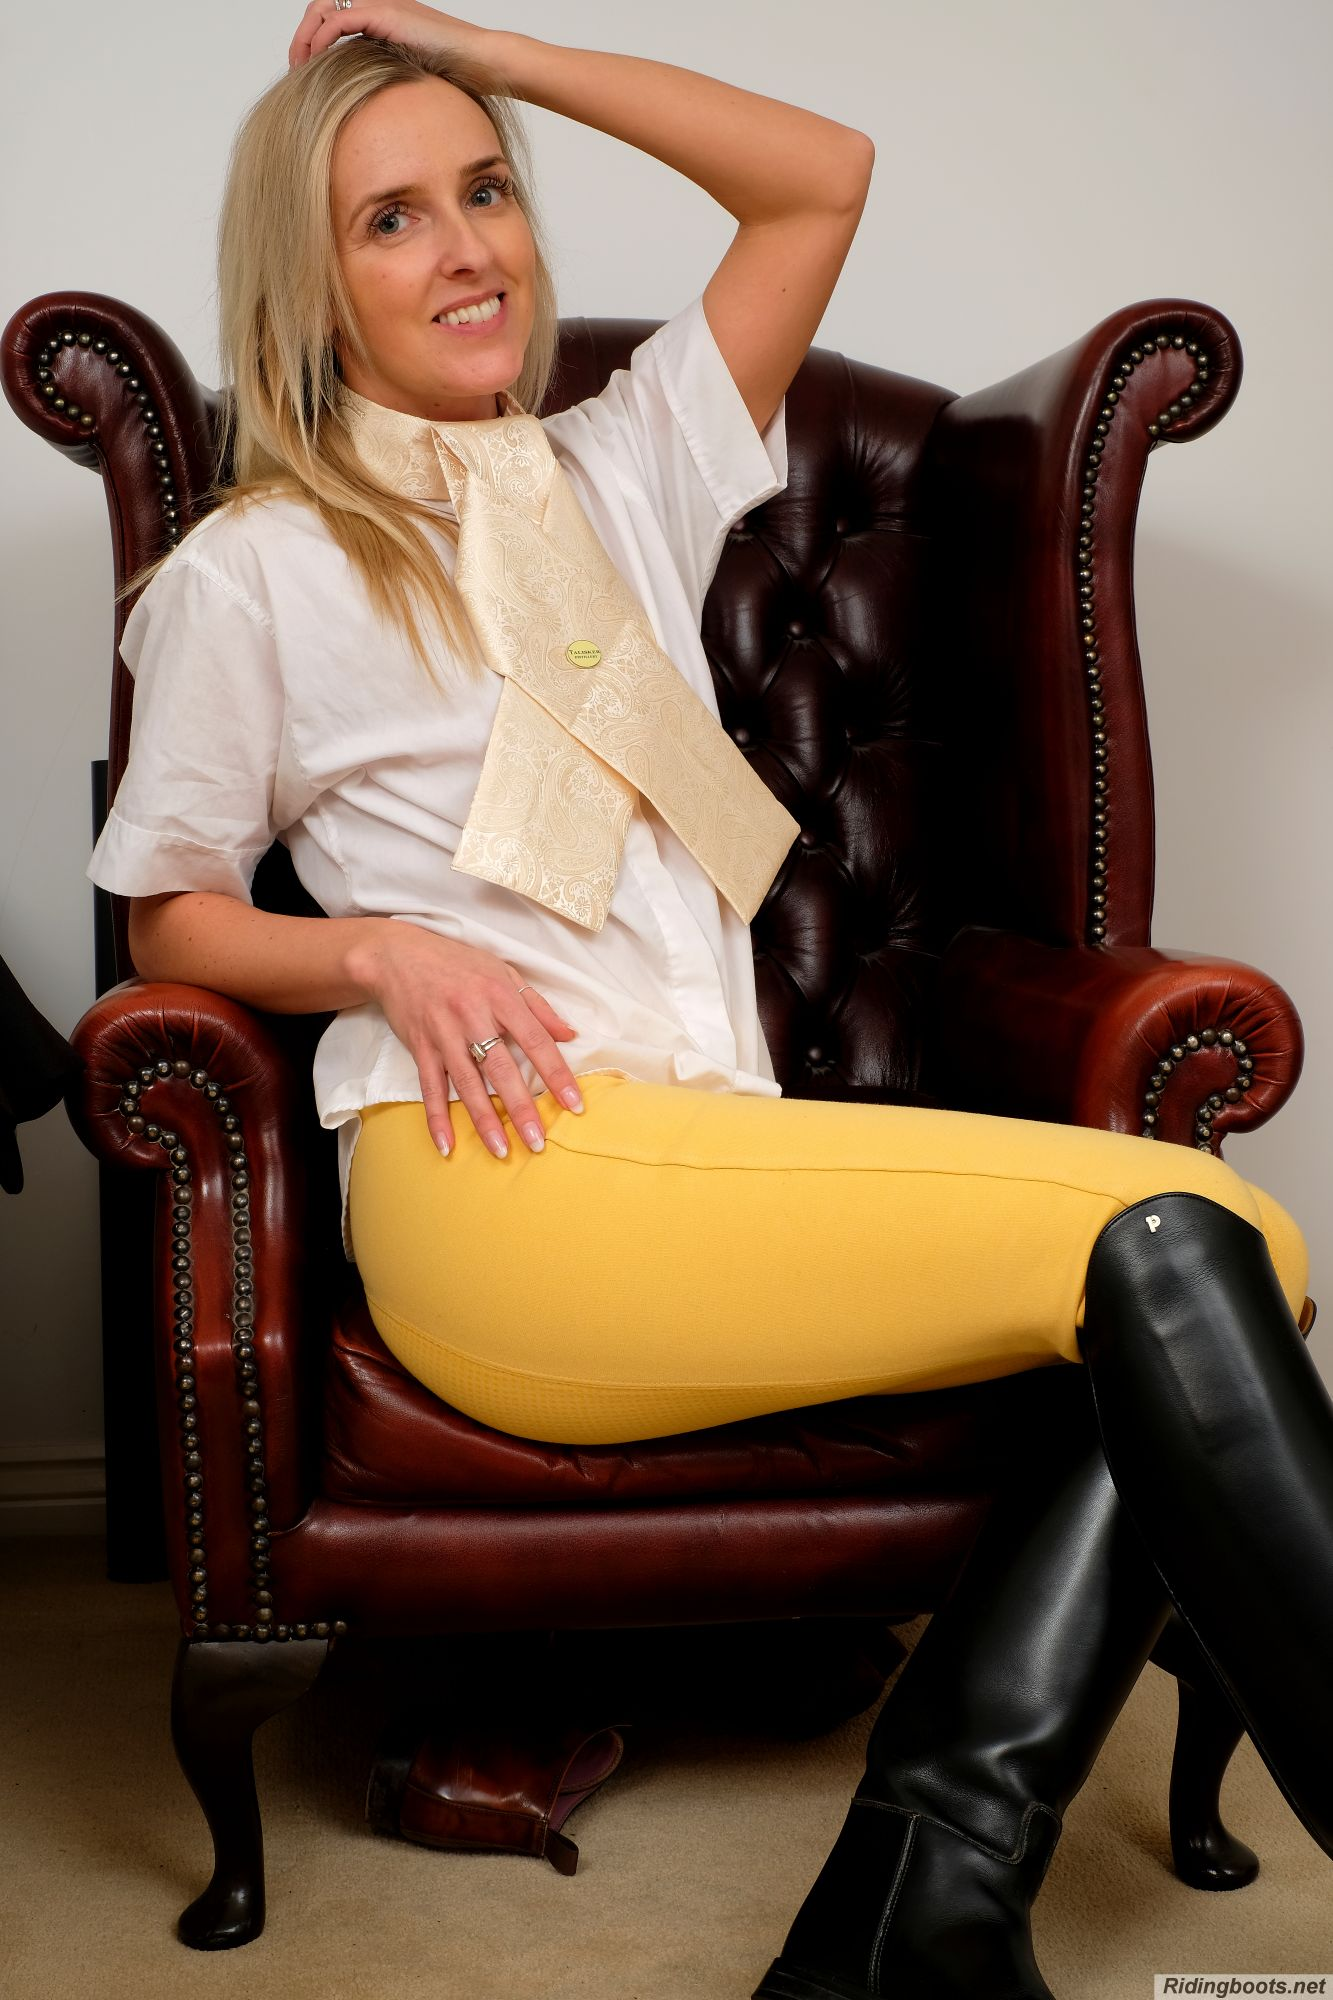 Bex White in ridingboots.